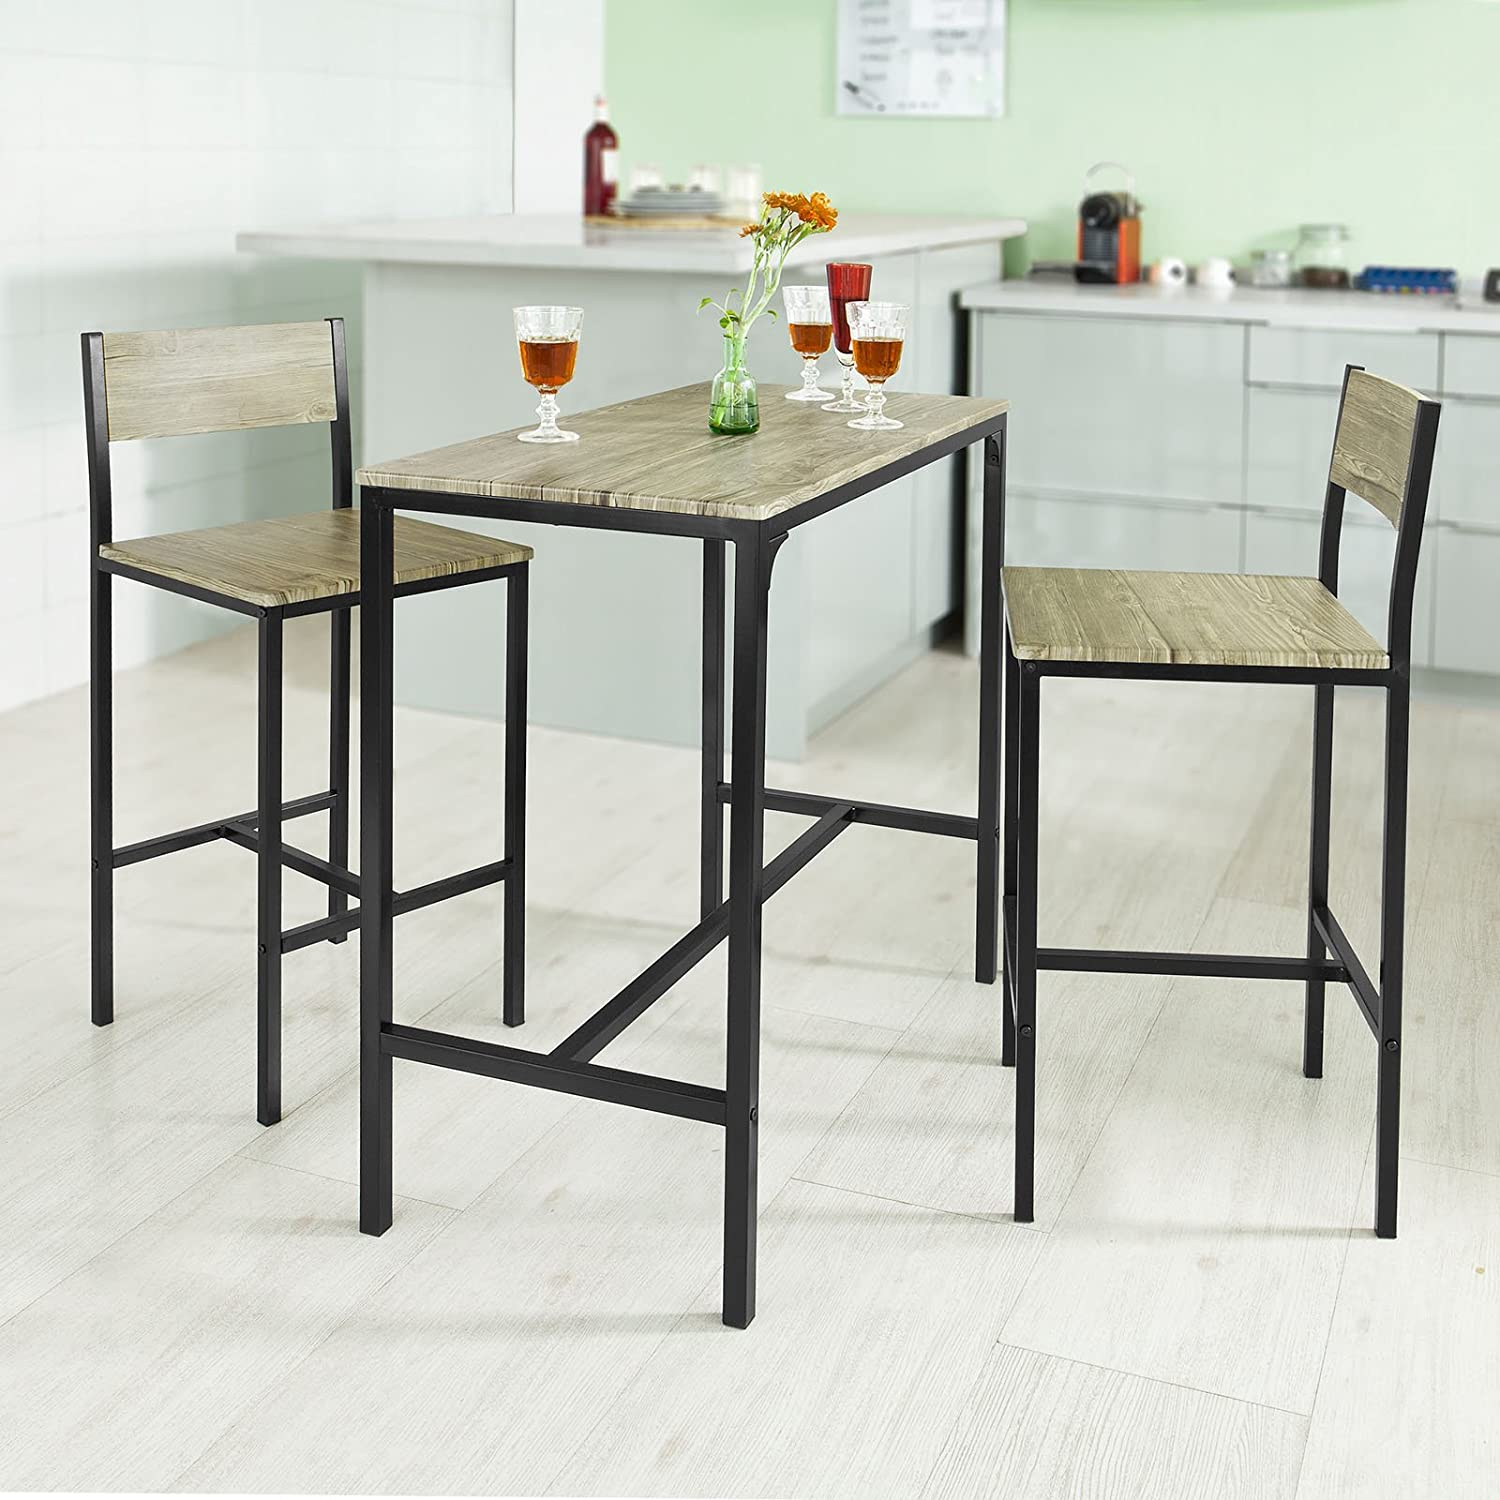 table de cuisine rabattable fabulous sobuy table murale de cuisine mangerpr fwt fr with table. Black Bedroom Furniture Sets. Home Design Ideas